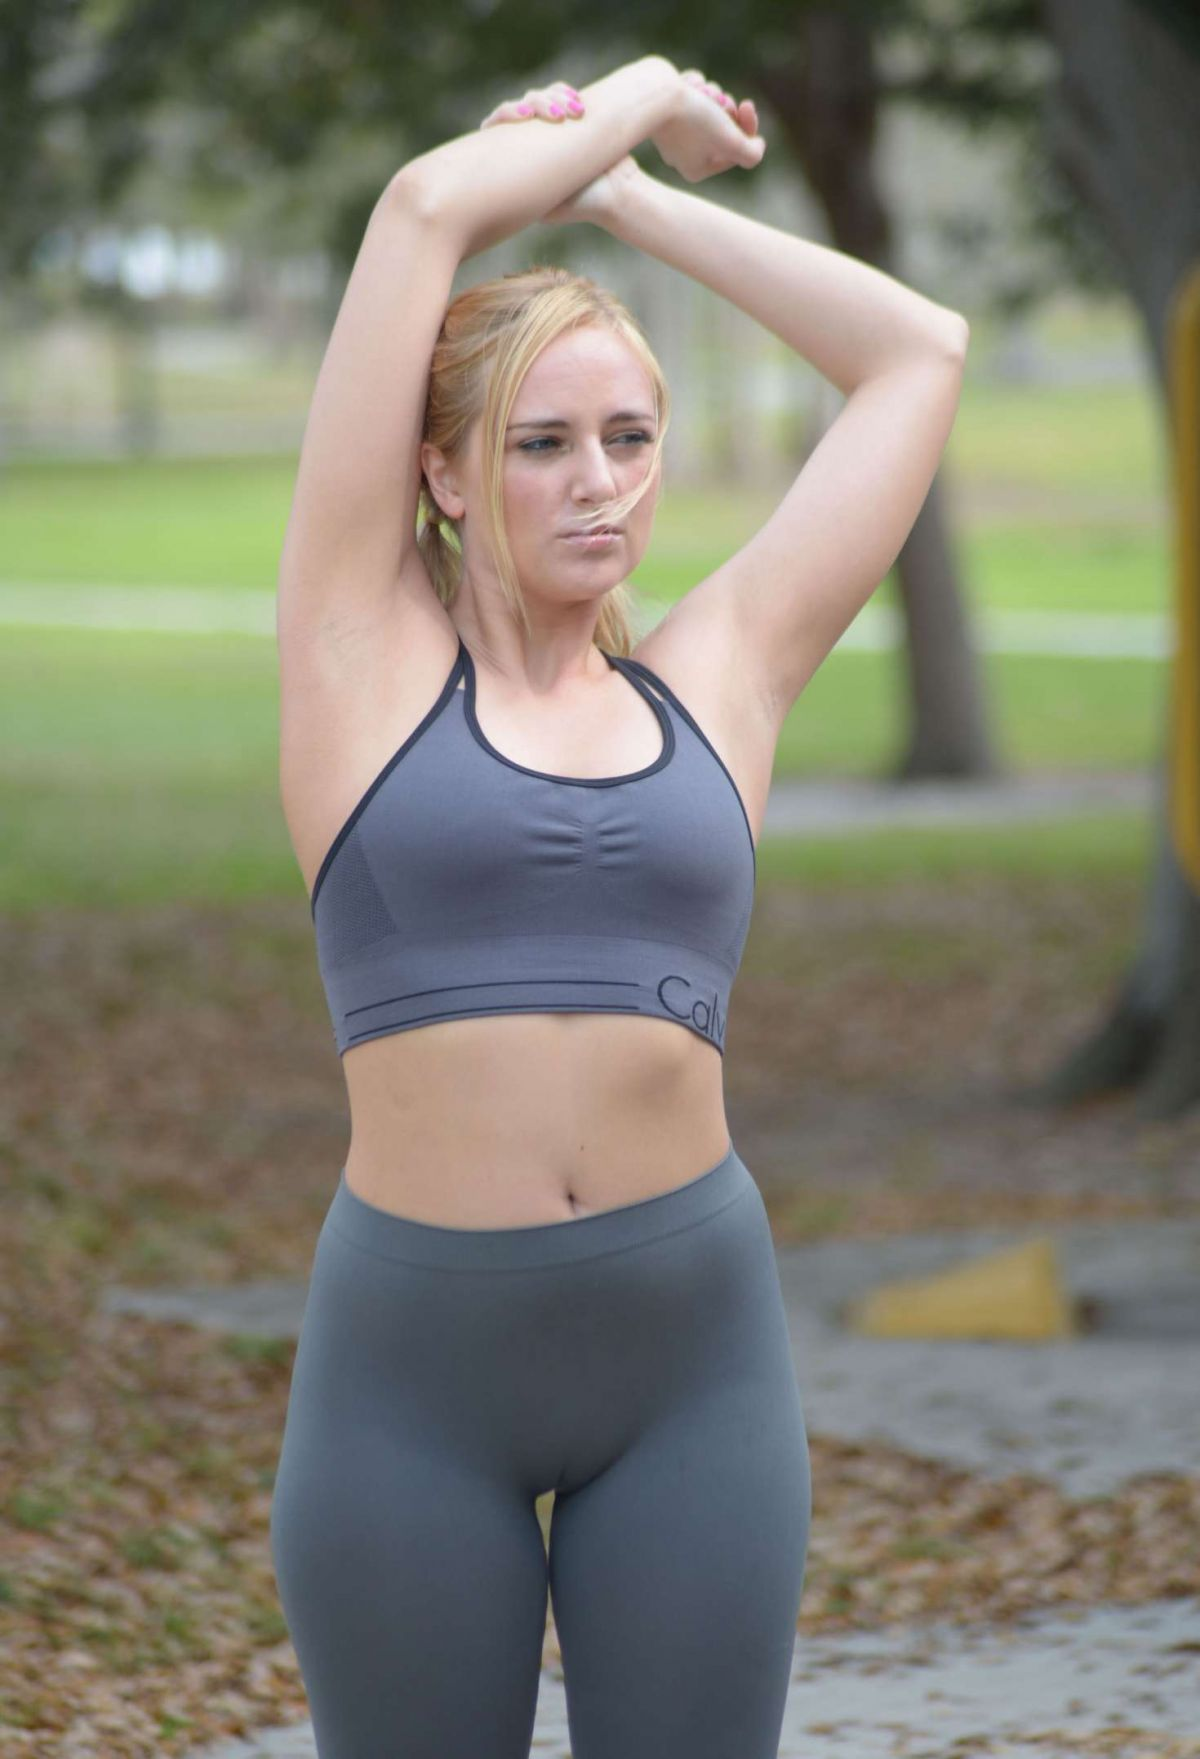 c9b9a81ddae85 Kate england workout at a park in miami celebzz jpg 1200x1759 Kate england  bra